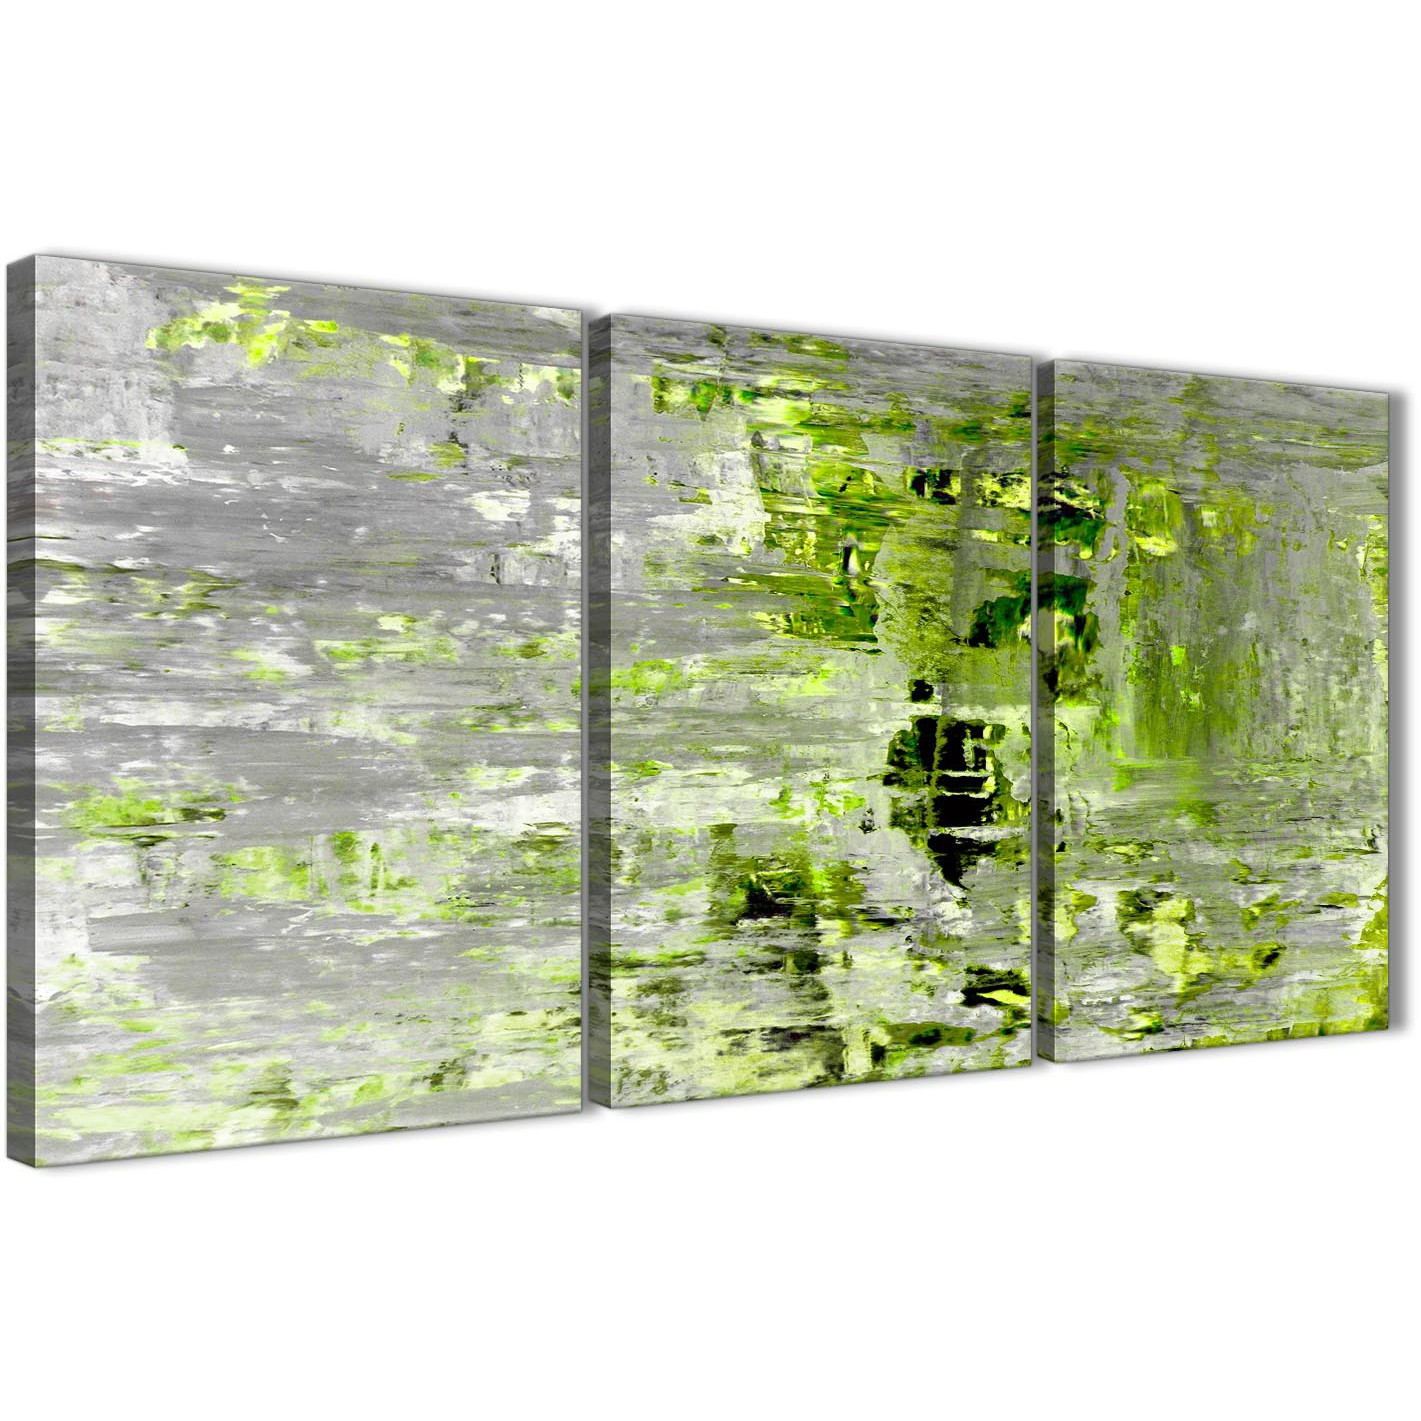 Attirant Oversized Lime Green Grey Abstract Painting Wall Art Print Canvas Split 3  Set 125cm Wide 3360 Display Gallery Item 1 ...